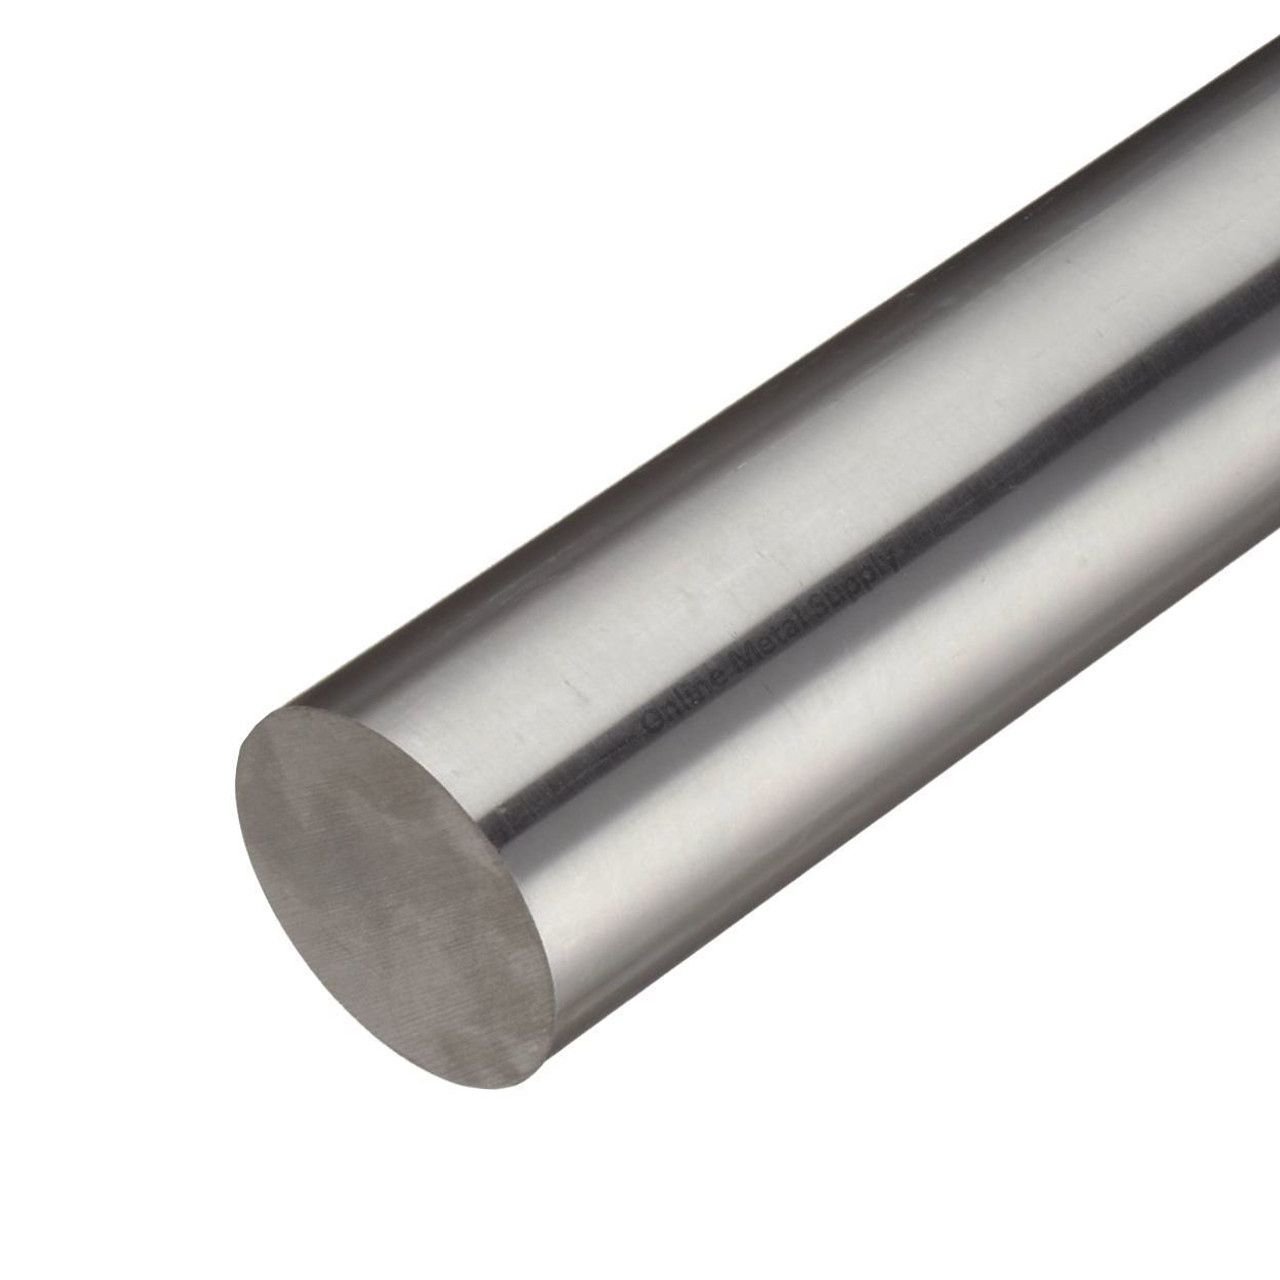 4.500 (4-1/2 inch) x 6 inches, 15-5 Cond A CF Stainless Steel Round Rod